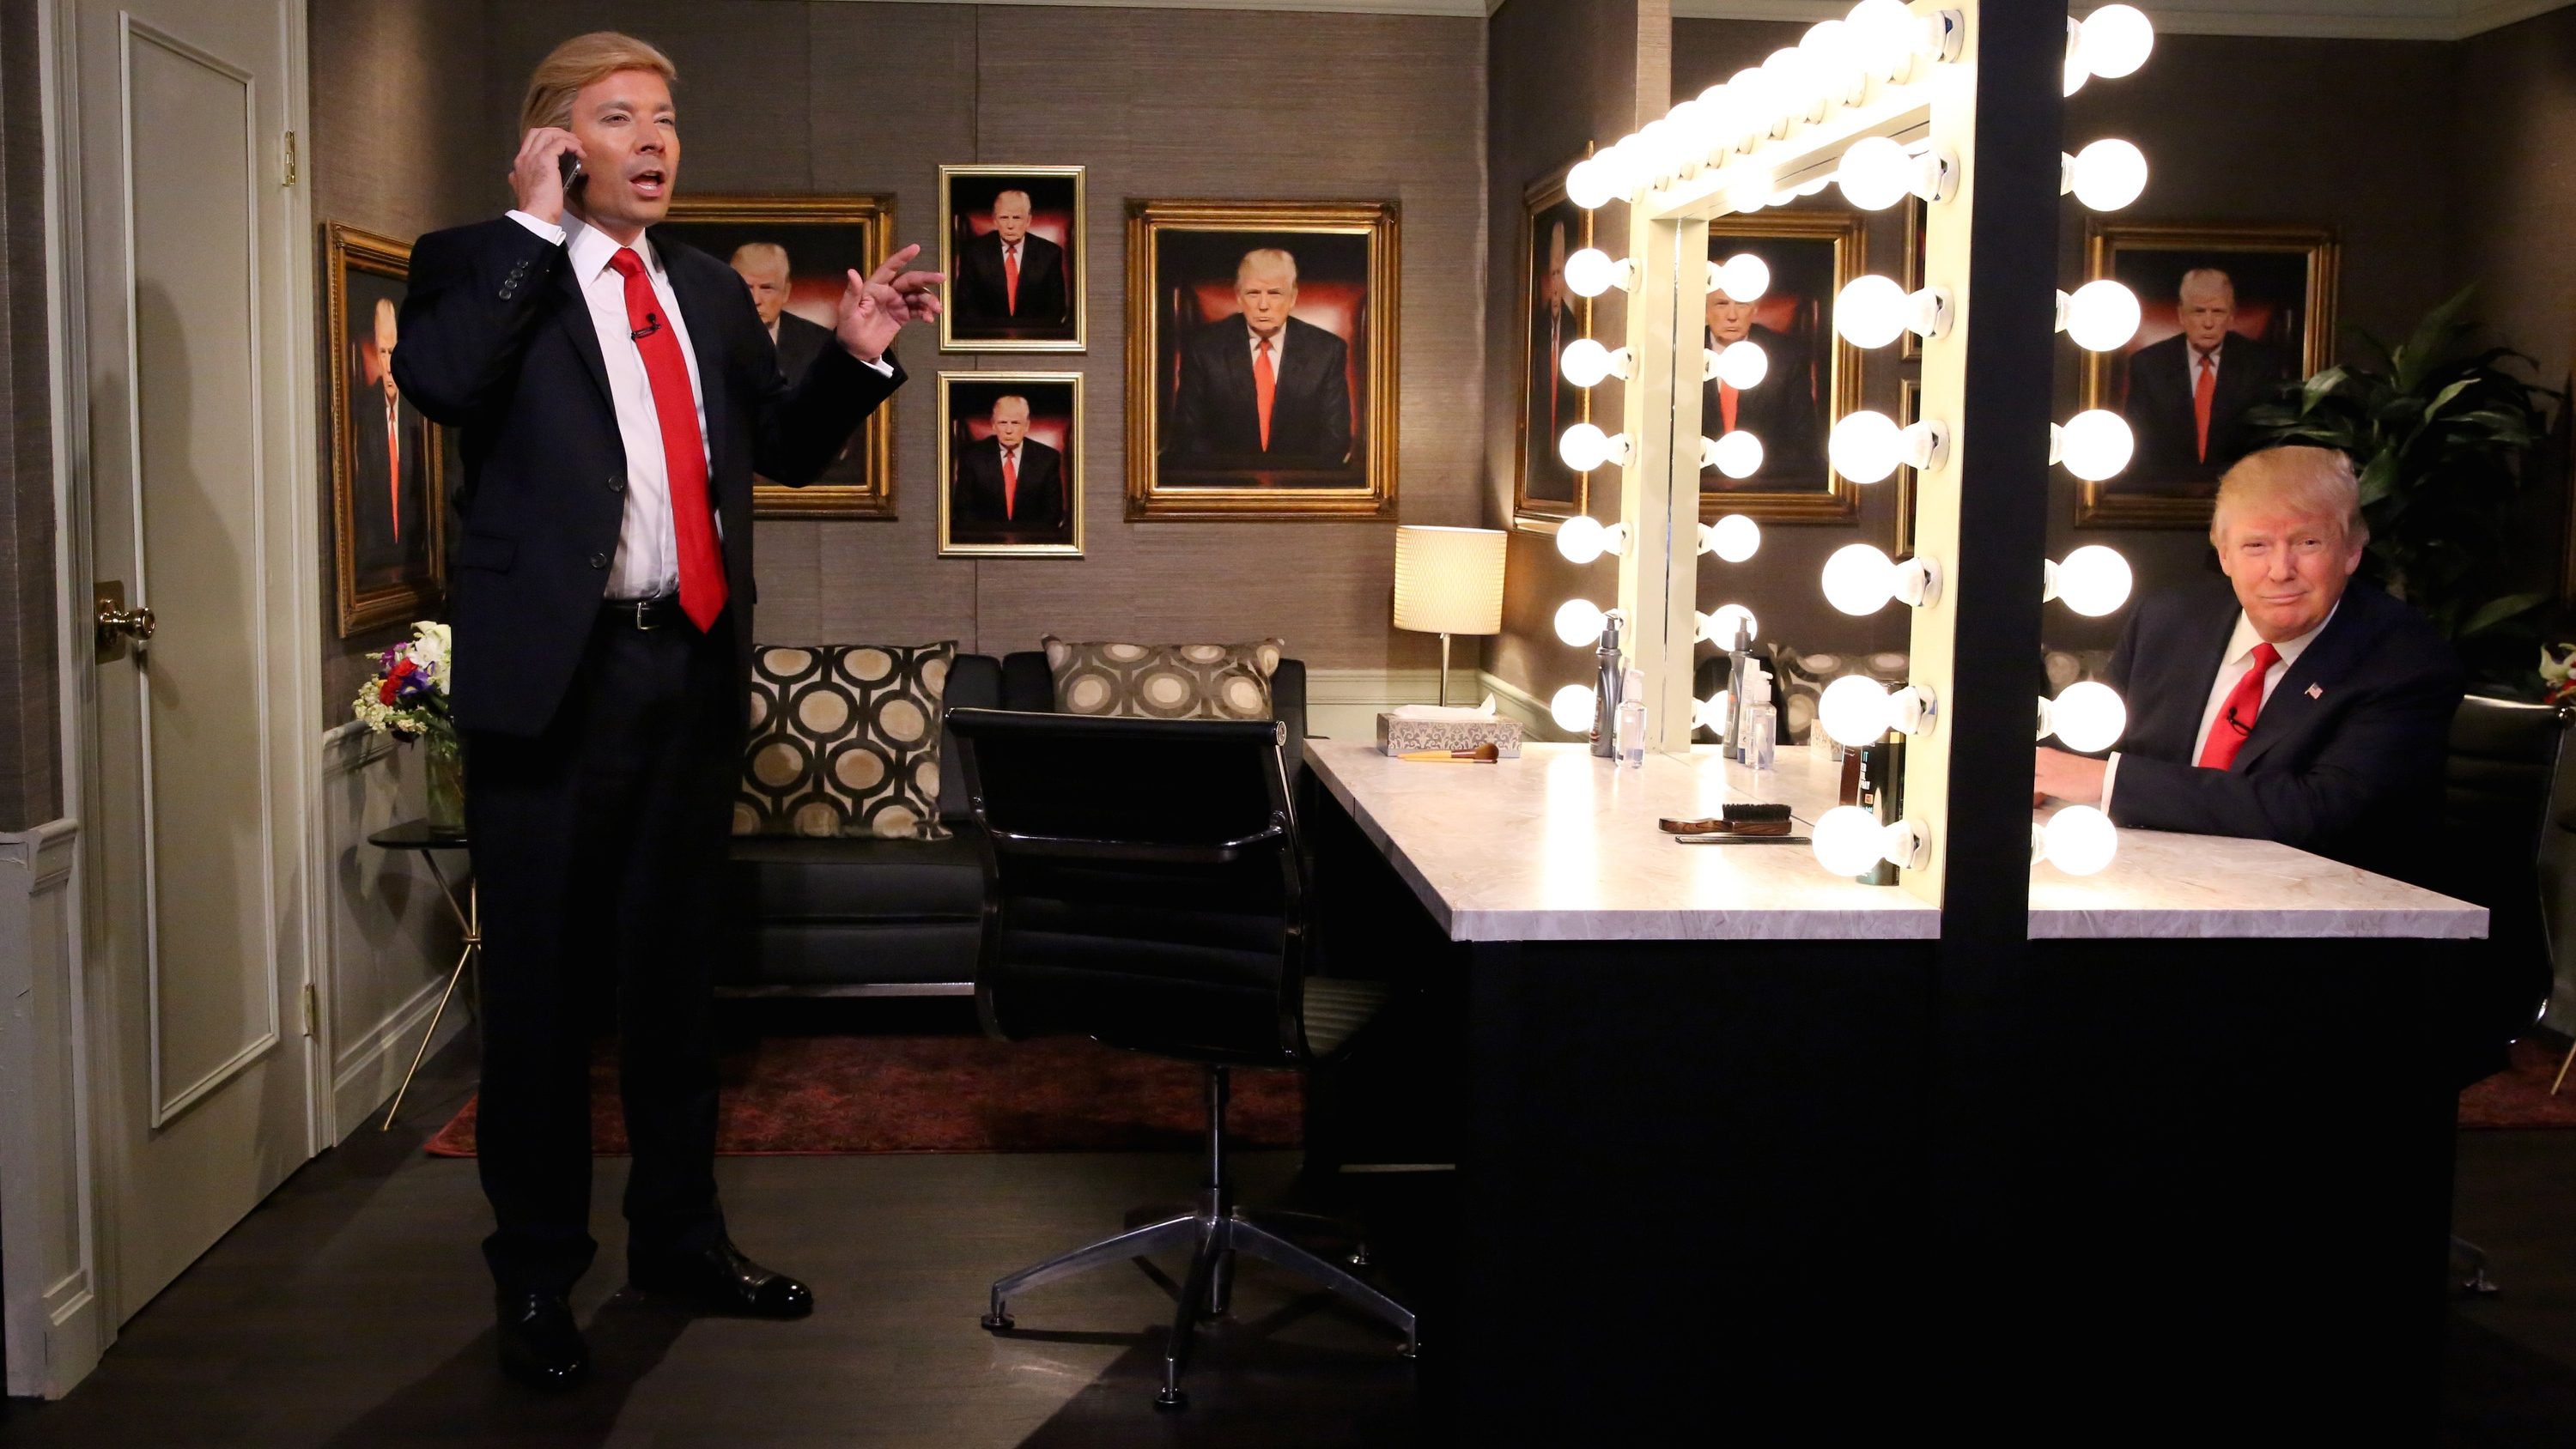 Jimmy Fallon and Donald Trump on 'The Tonight Show' - H 2015